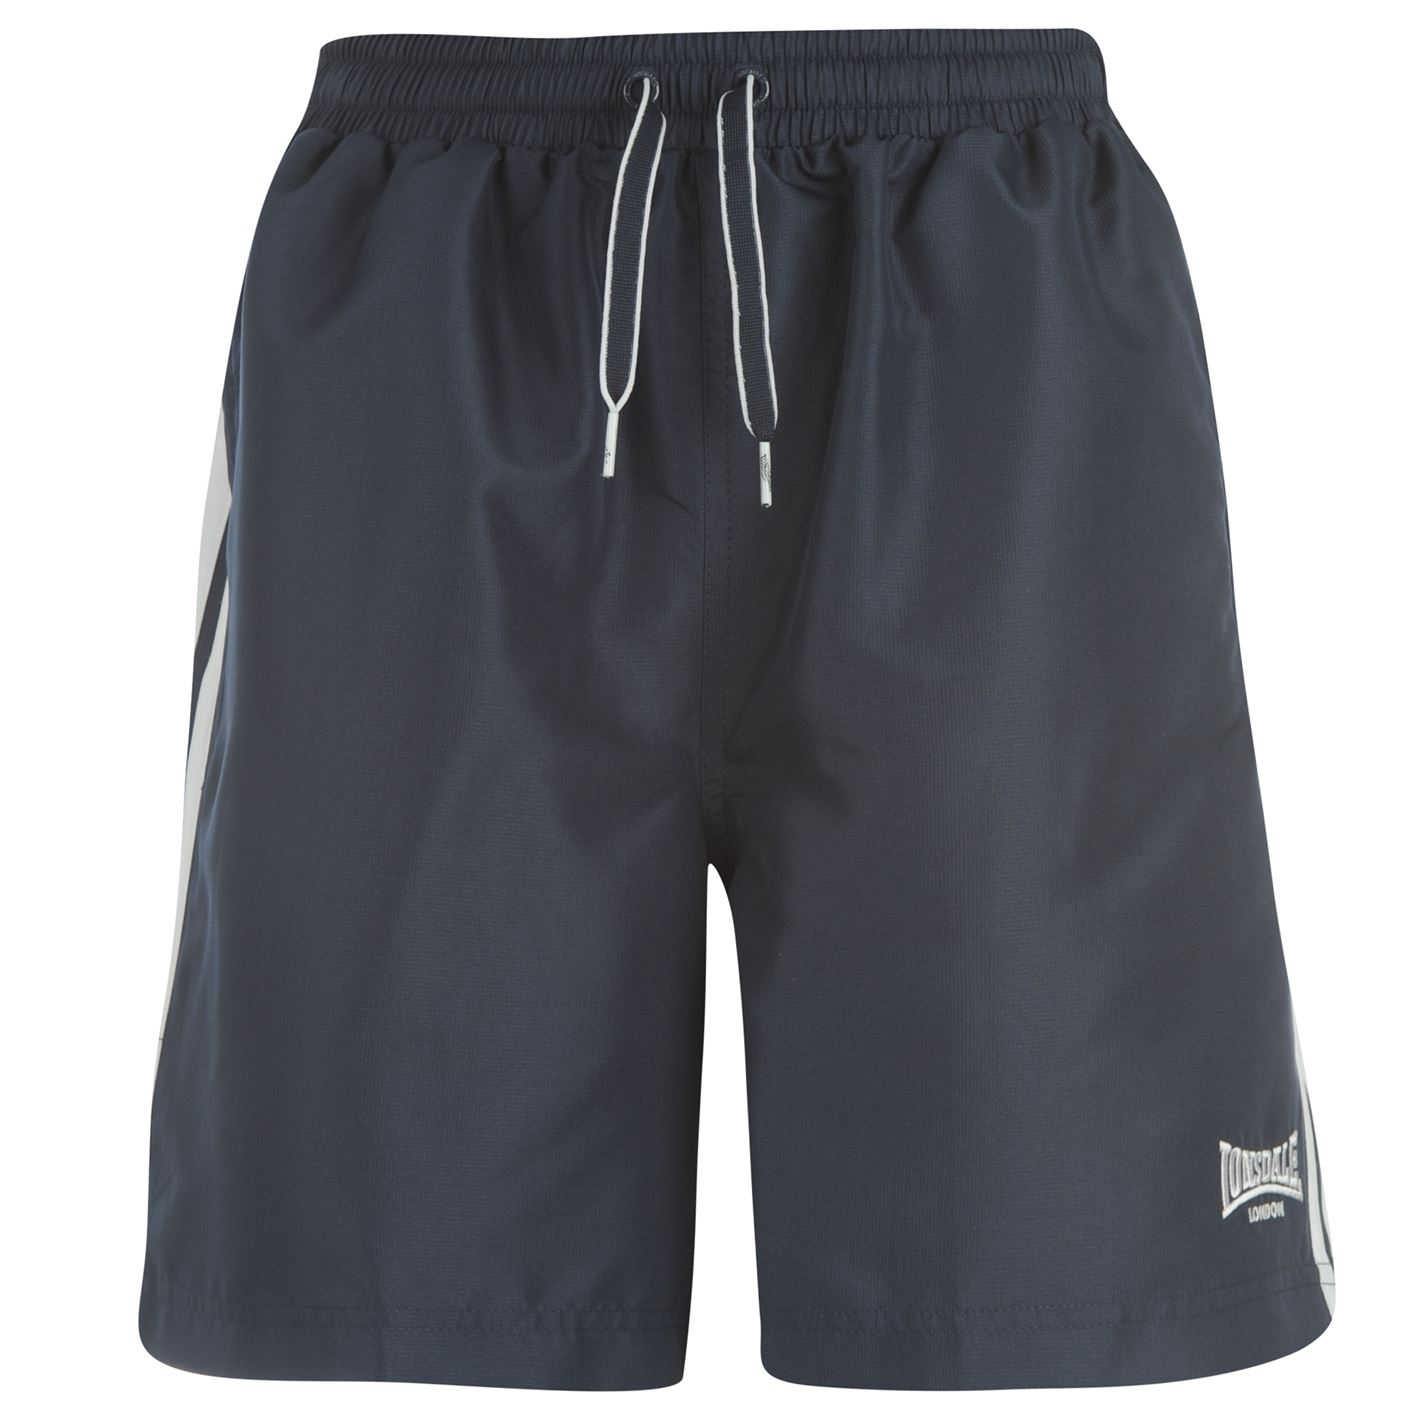 lonsdale herren hose shorts bermuda sporthose badeshorts. Black Bedroom Furniture Sets. Home Design Ideas